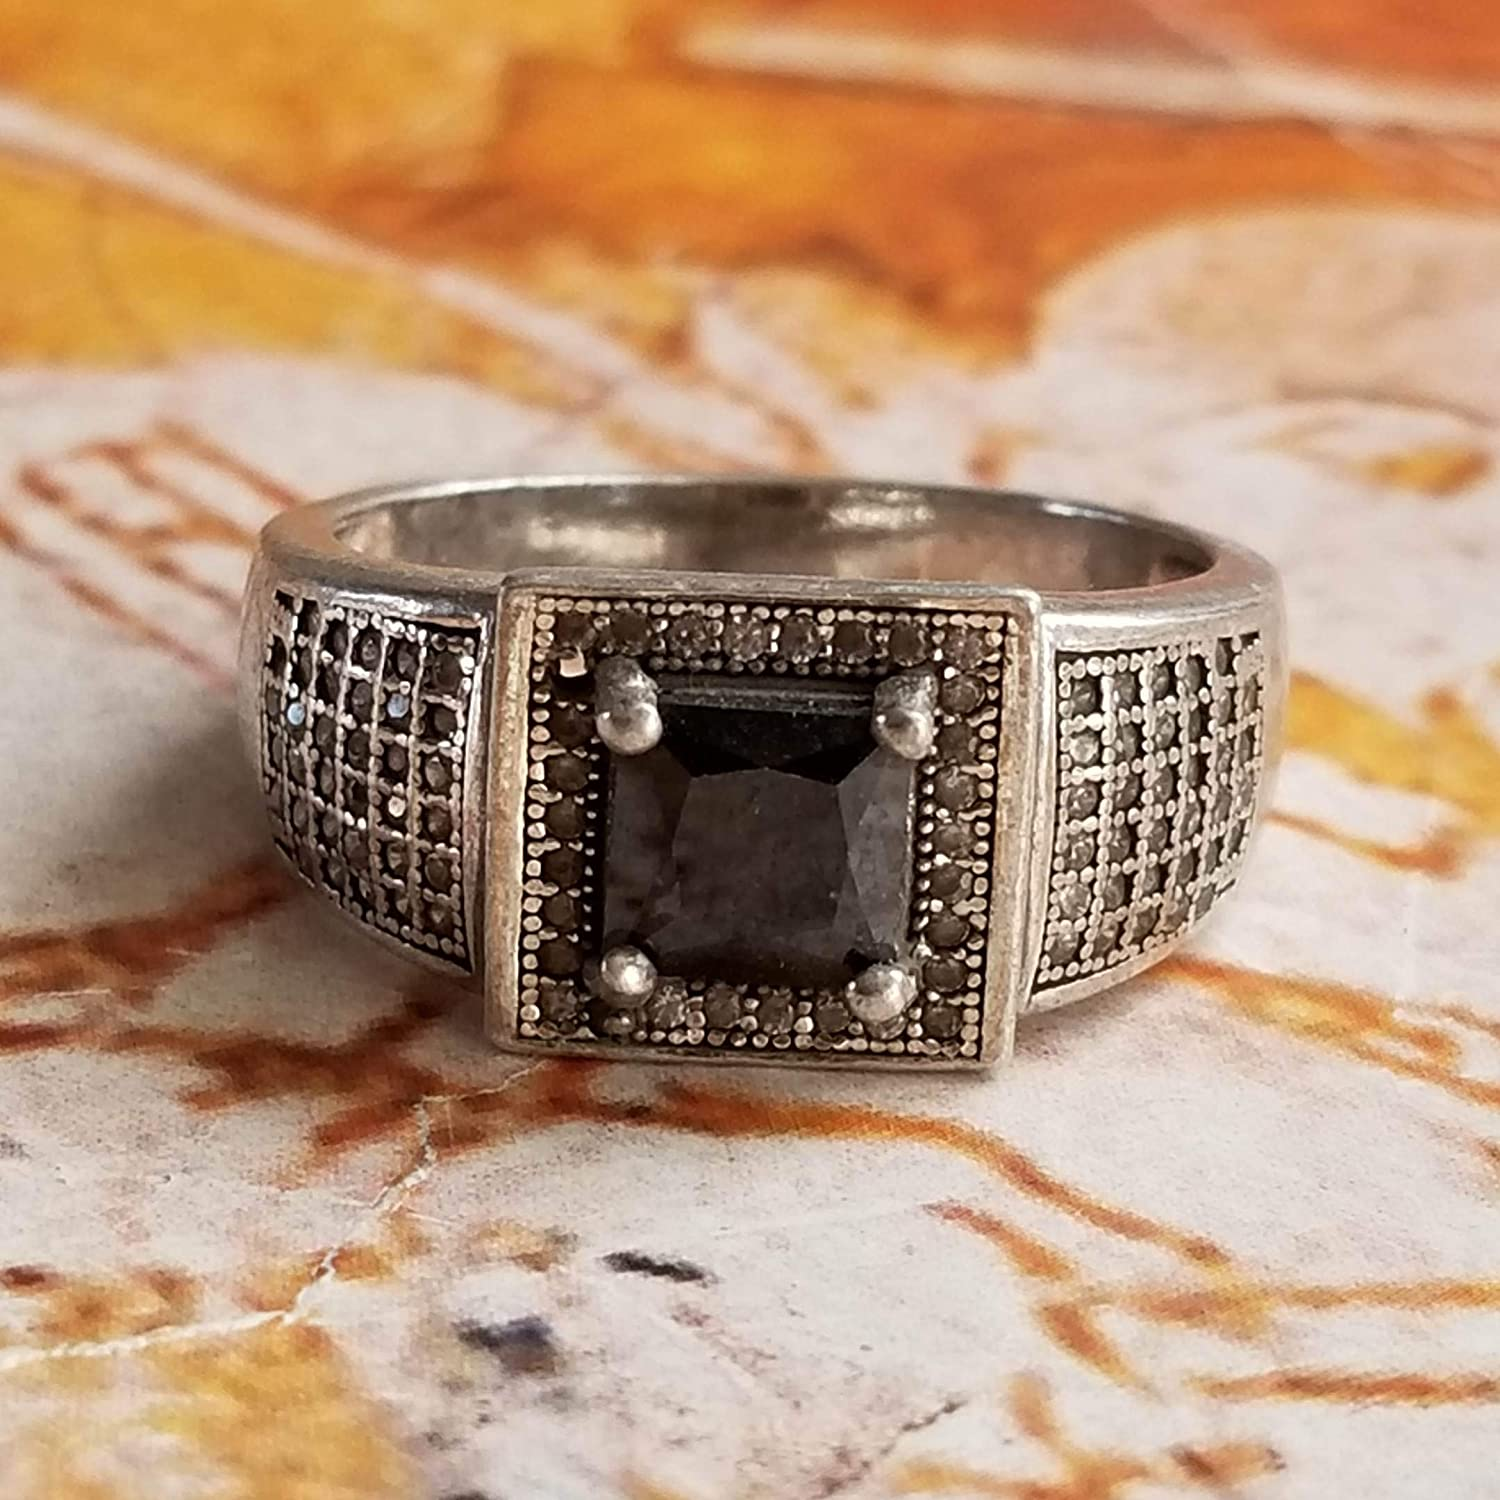 KONOZ Antique Handmade 925 Sterling Silver Ring Genuine Black Topaz Stone